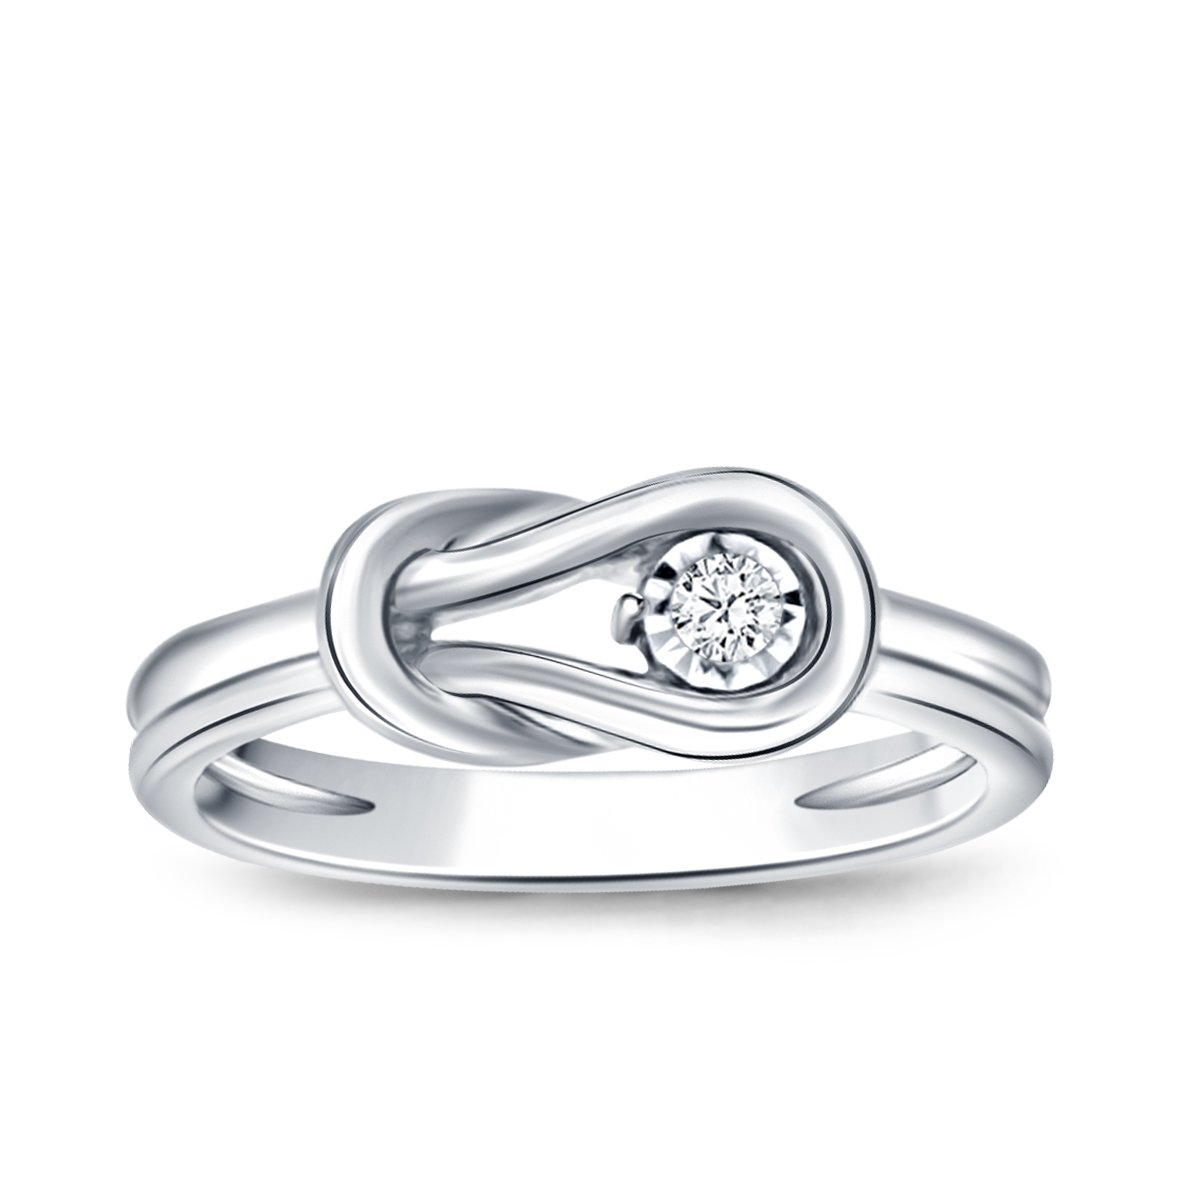 0.05ct Diamond Accent Love Knot Promise Ring in Sterling Silver (IJ/I2-I3) Women US4-US10